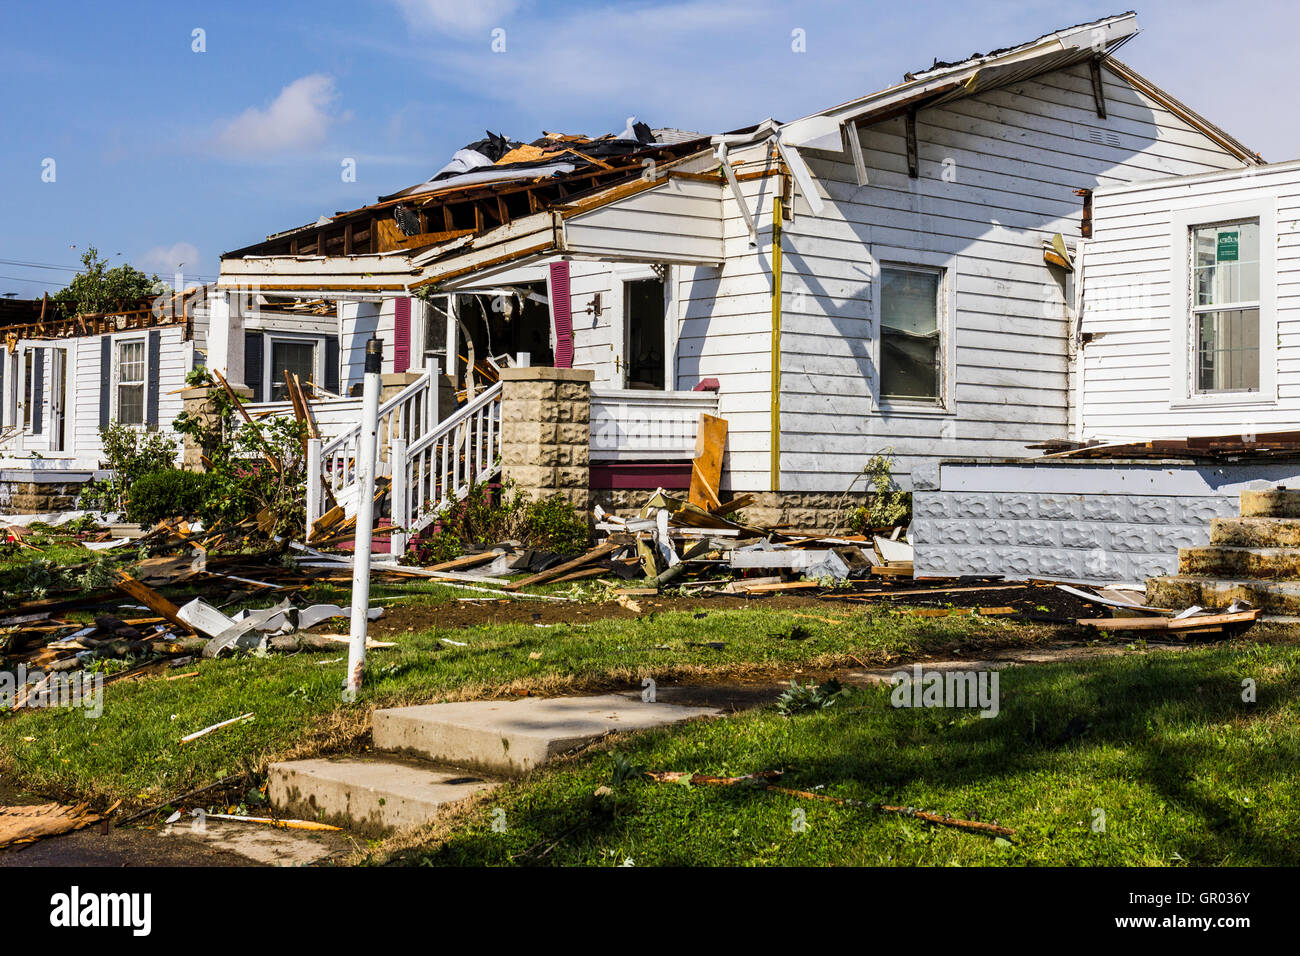 Kokomo - August 24, 2016: Several EF3 tornadoes touched down in a residential neighborhood causing widespread damage - Stock Image